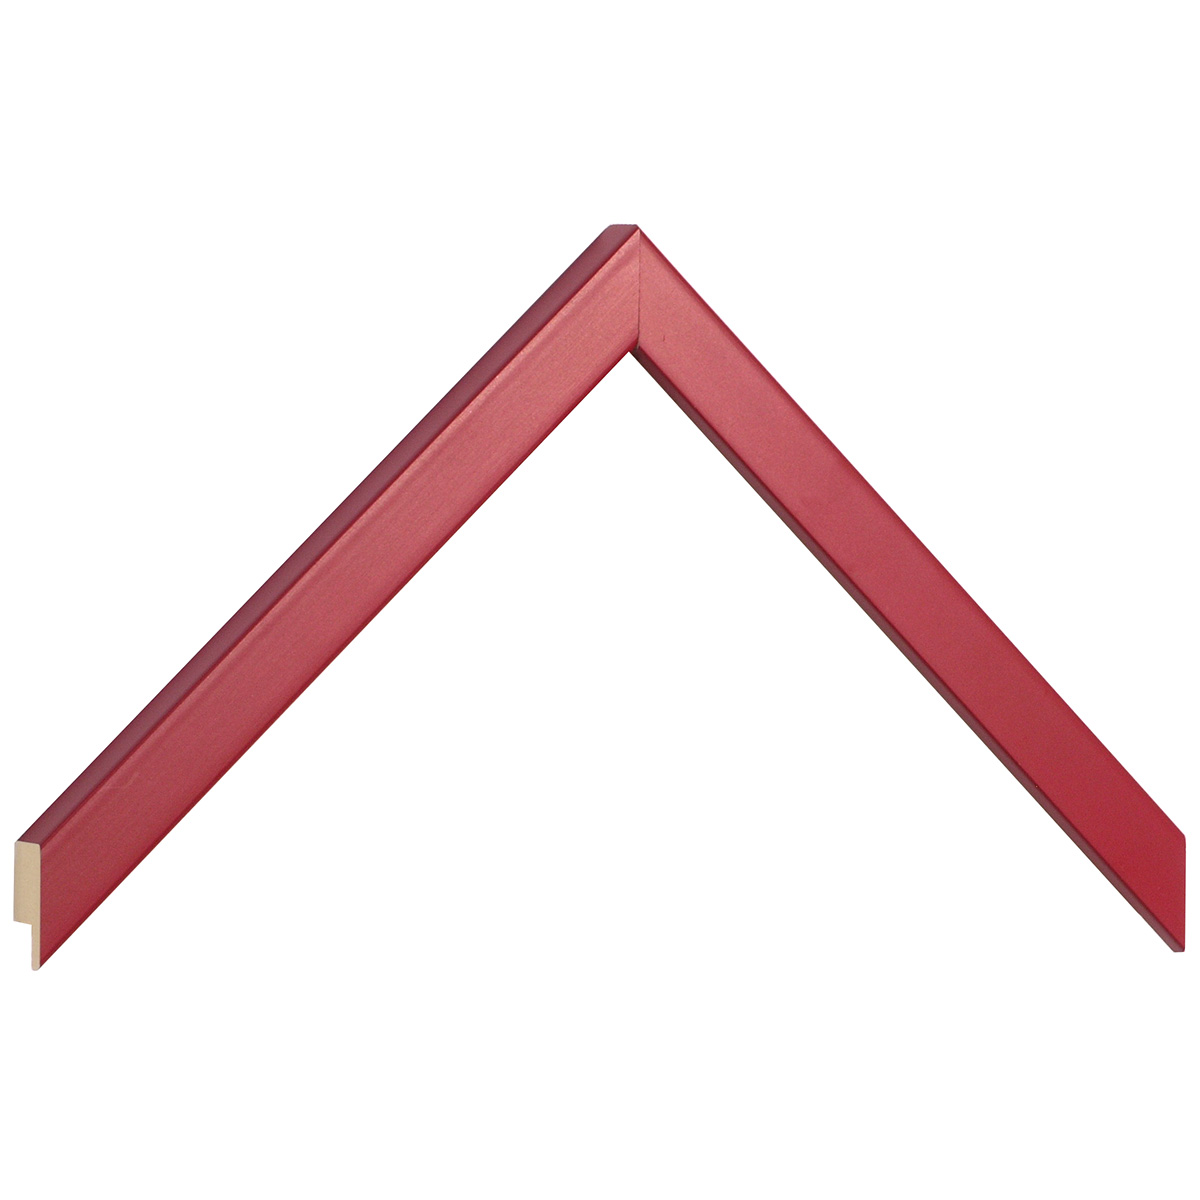 Moulding ayous width 15mm height 14 - red